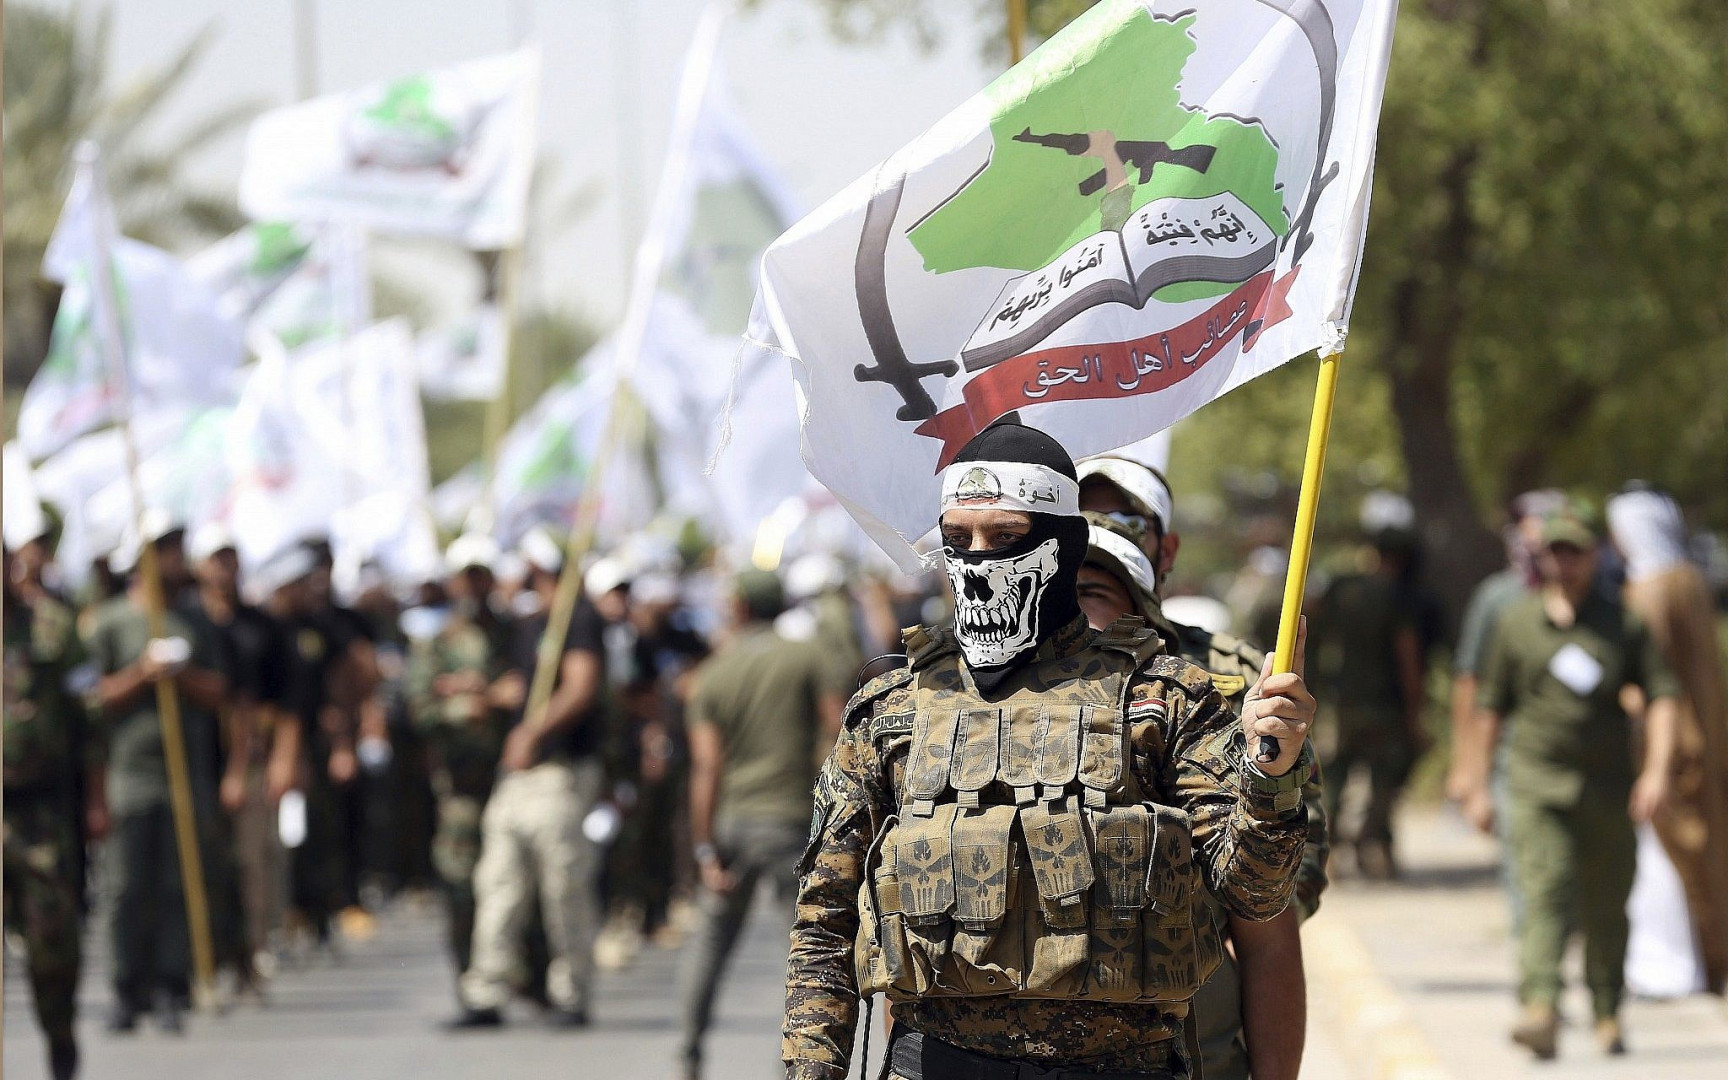 Five injured in clashes between PMF and Asa'ib Ahl al-Haq members in Mosul